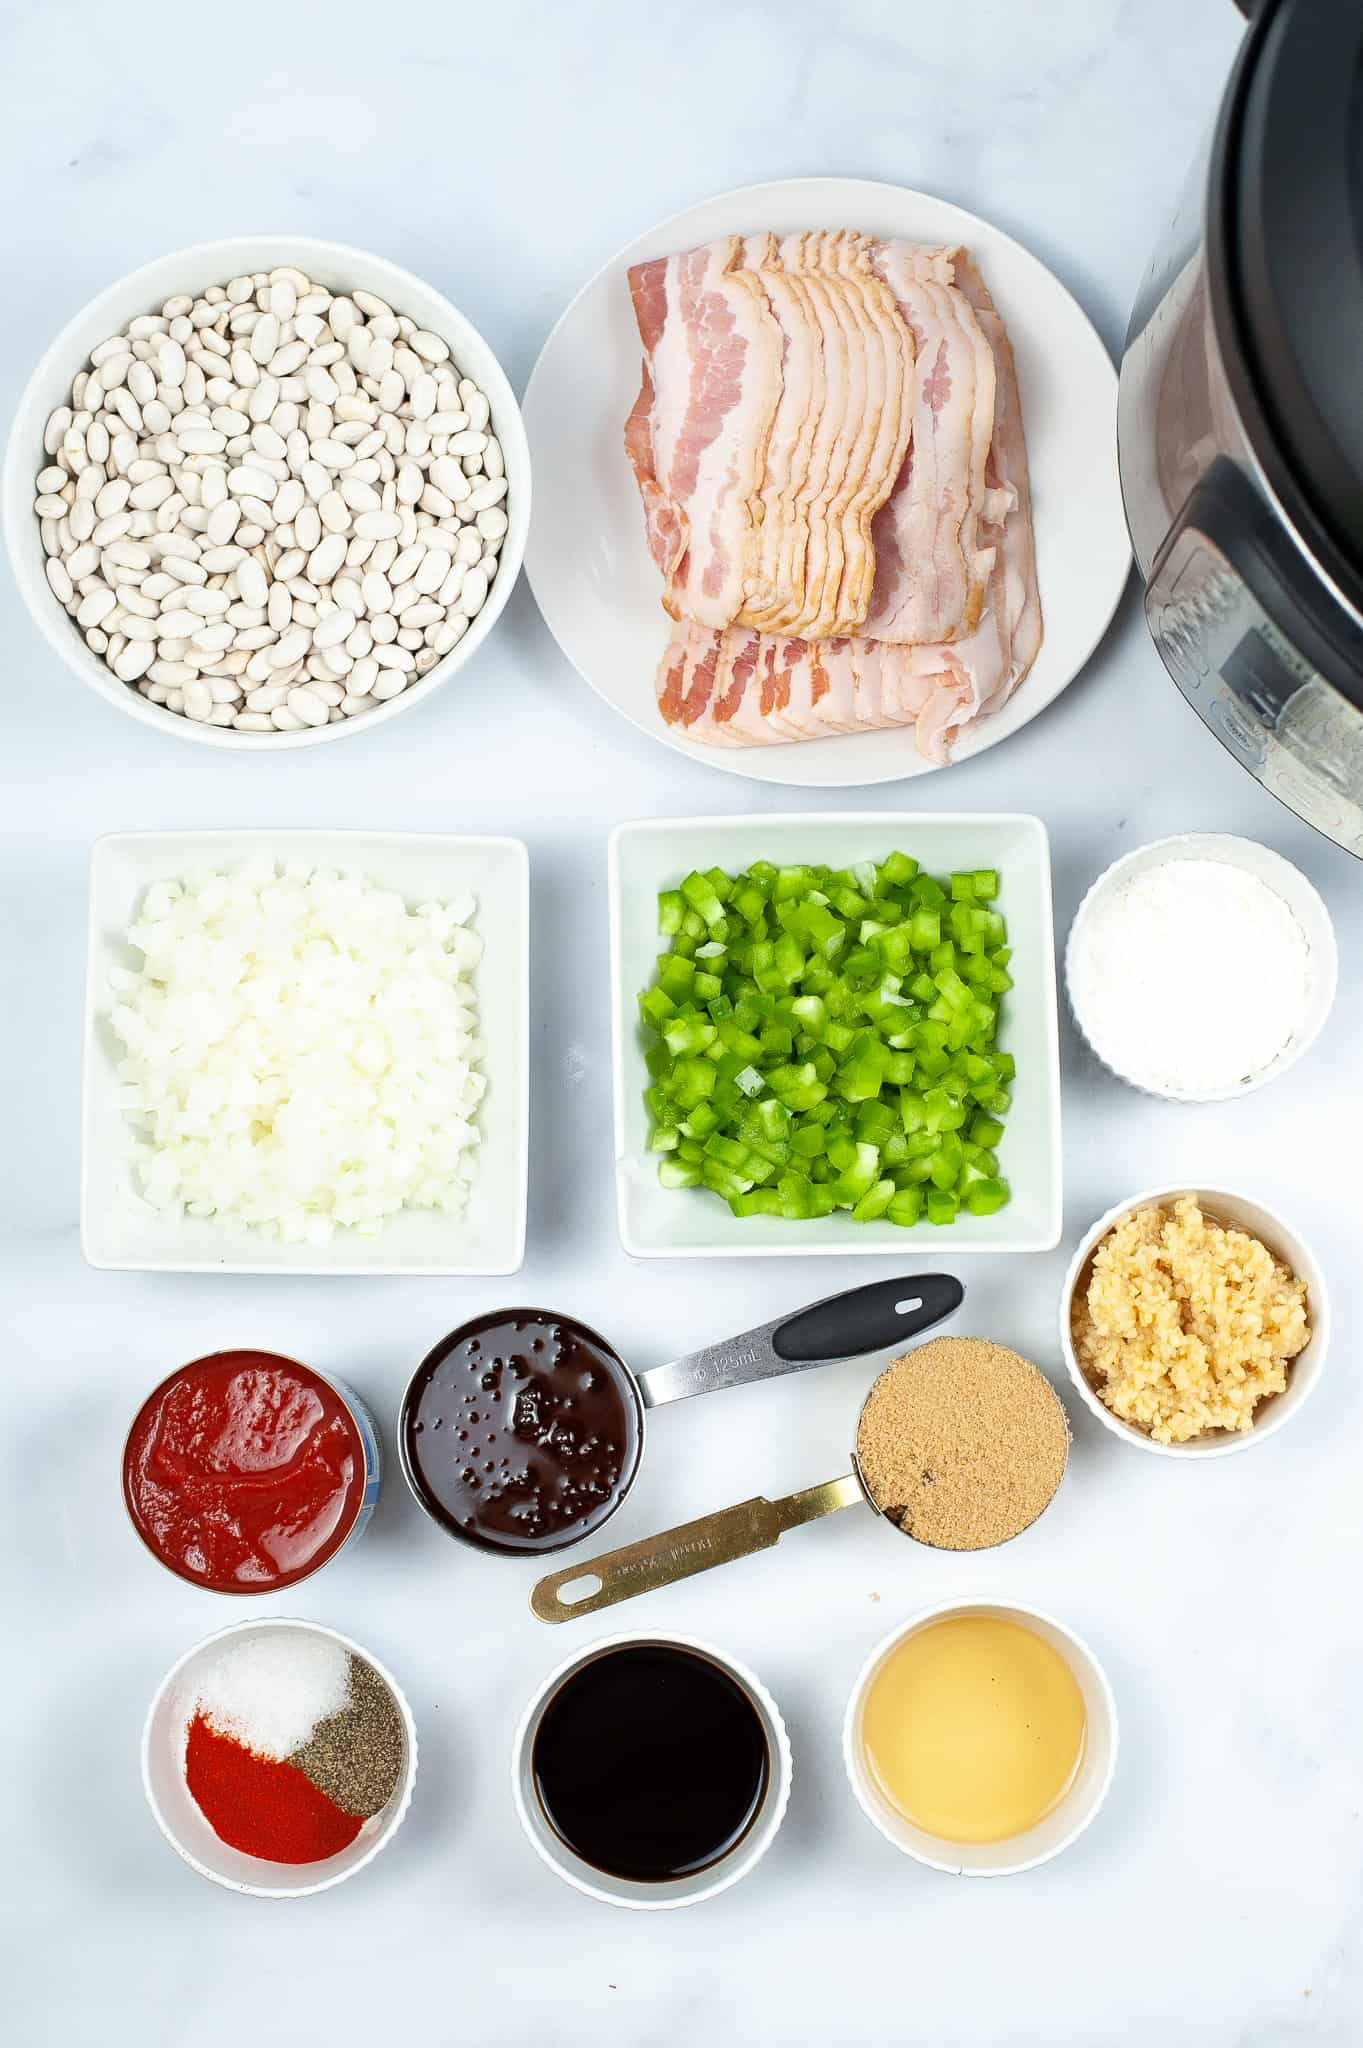 Bowls of beans vegetables bacon and seasonings required to make the instant pot baked beans.